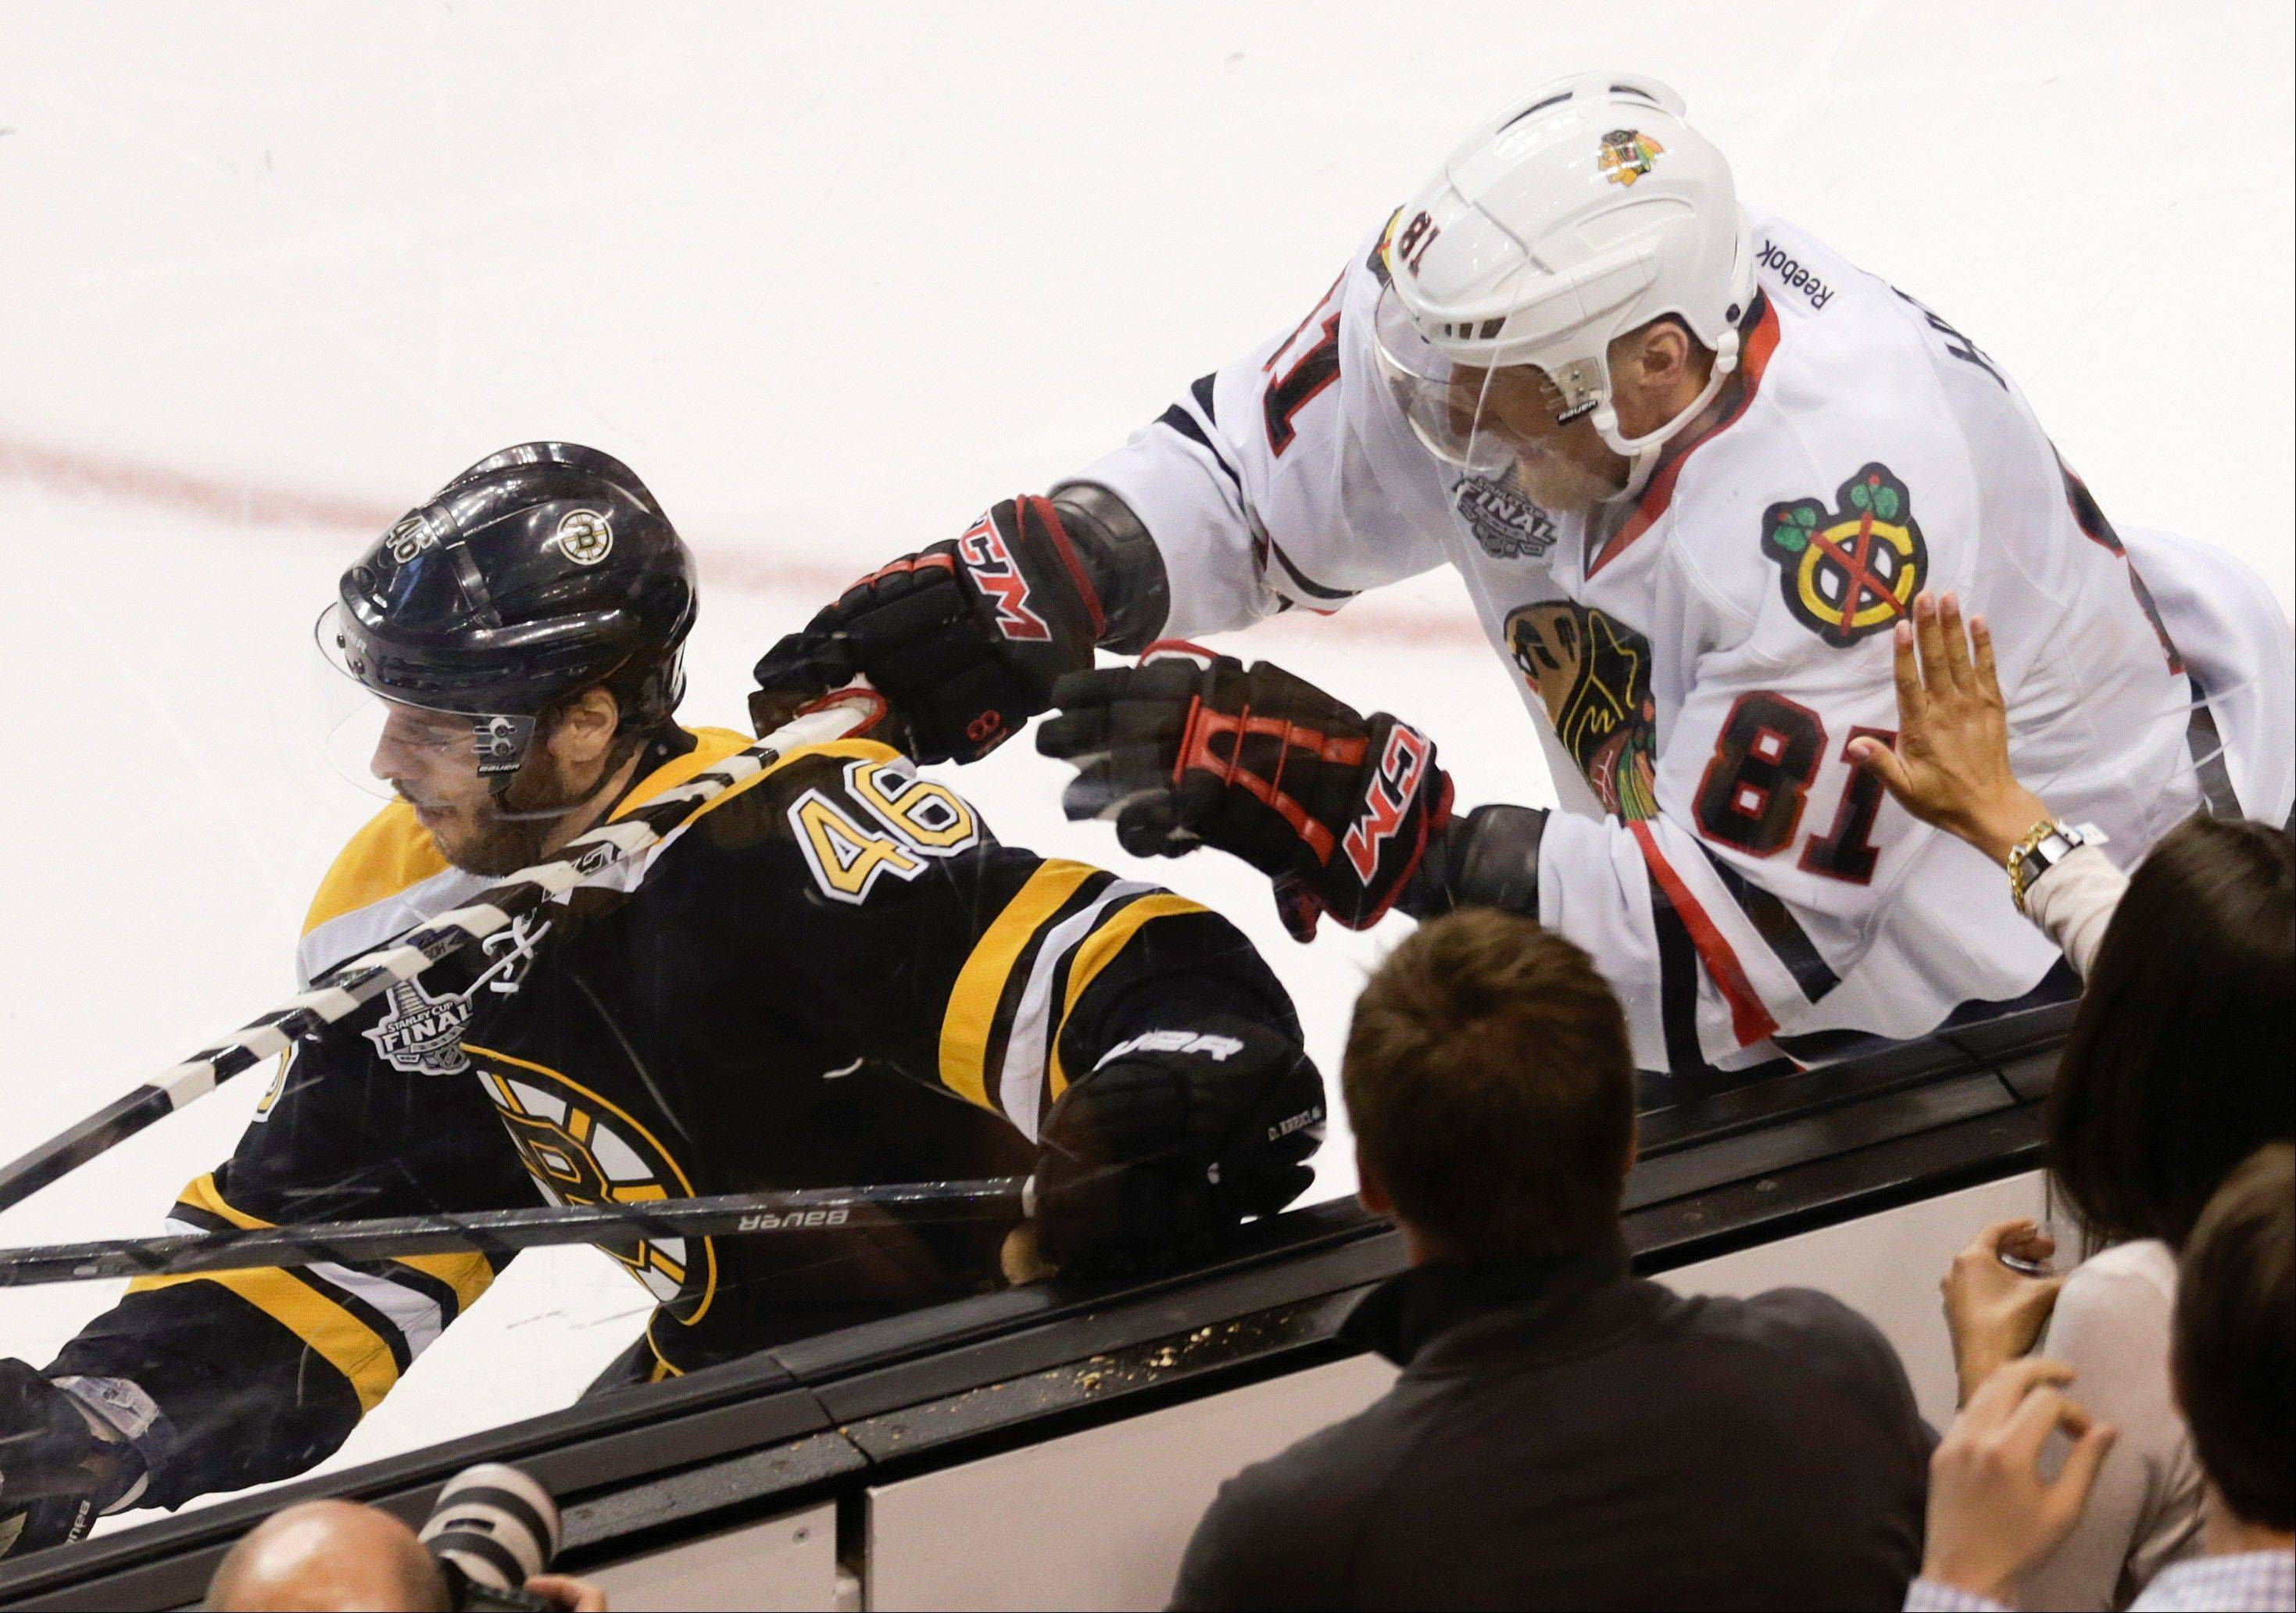 The Blackhawks� Marian Hossa checks Boston�s David Krejci during the second period in Game 4 of the Stanley Cup Final on Wednesday.